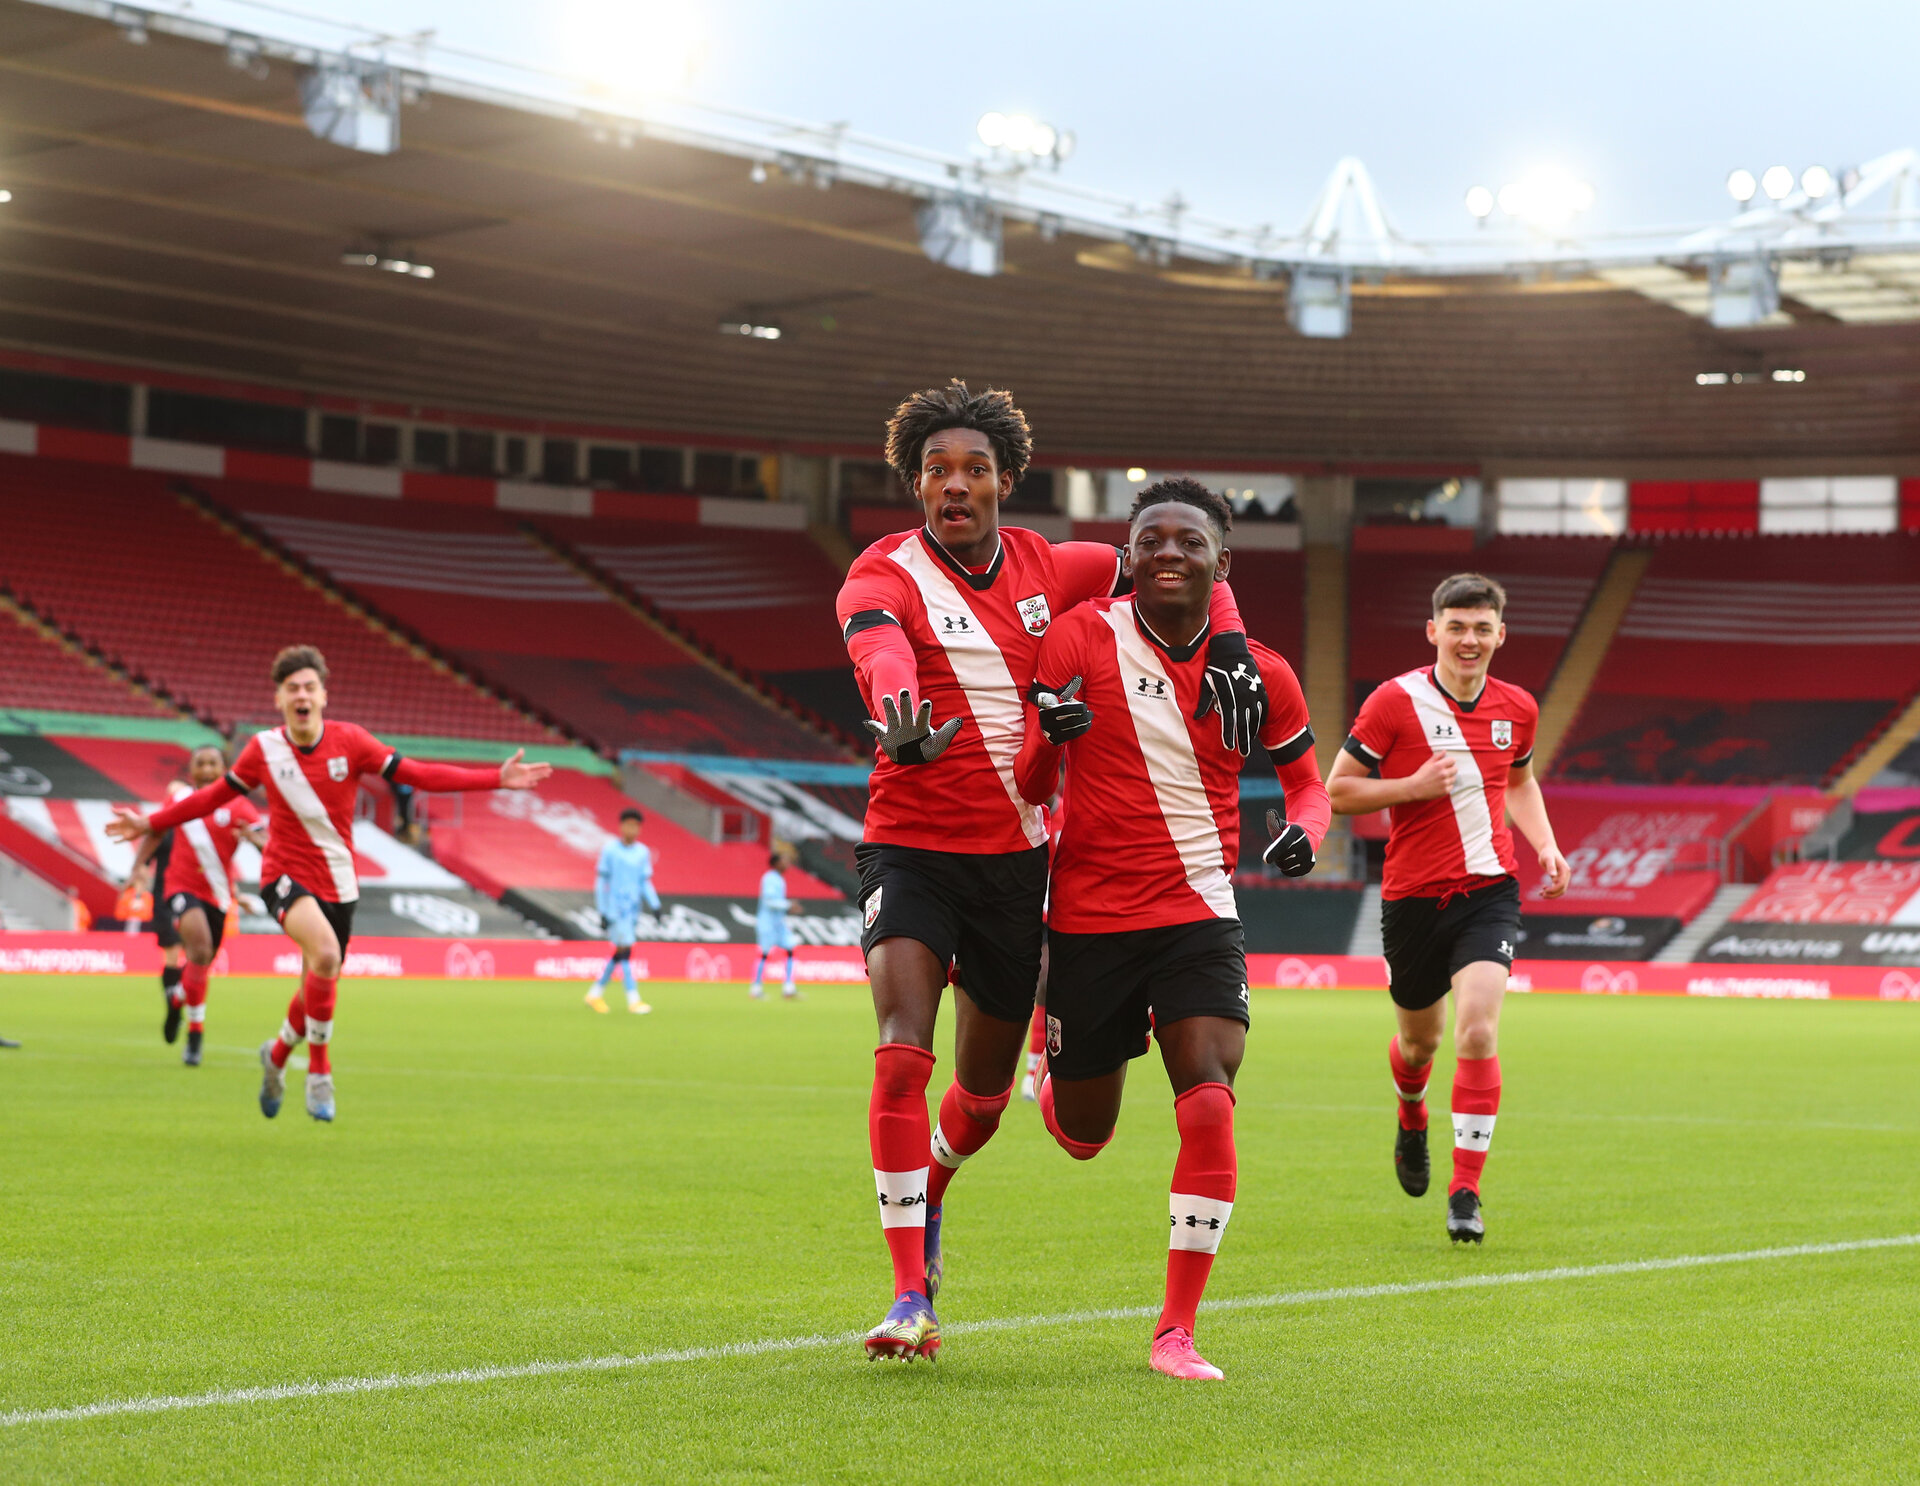 Southampton v Coventry City FA Youth cup at St Mary's Stadium. Southampton's Kazeem Olaigbe scores Saints first goal.